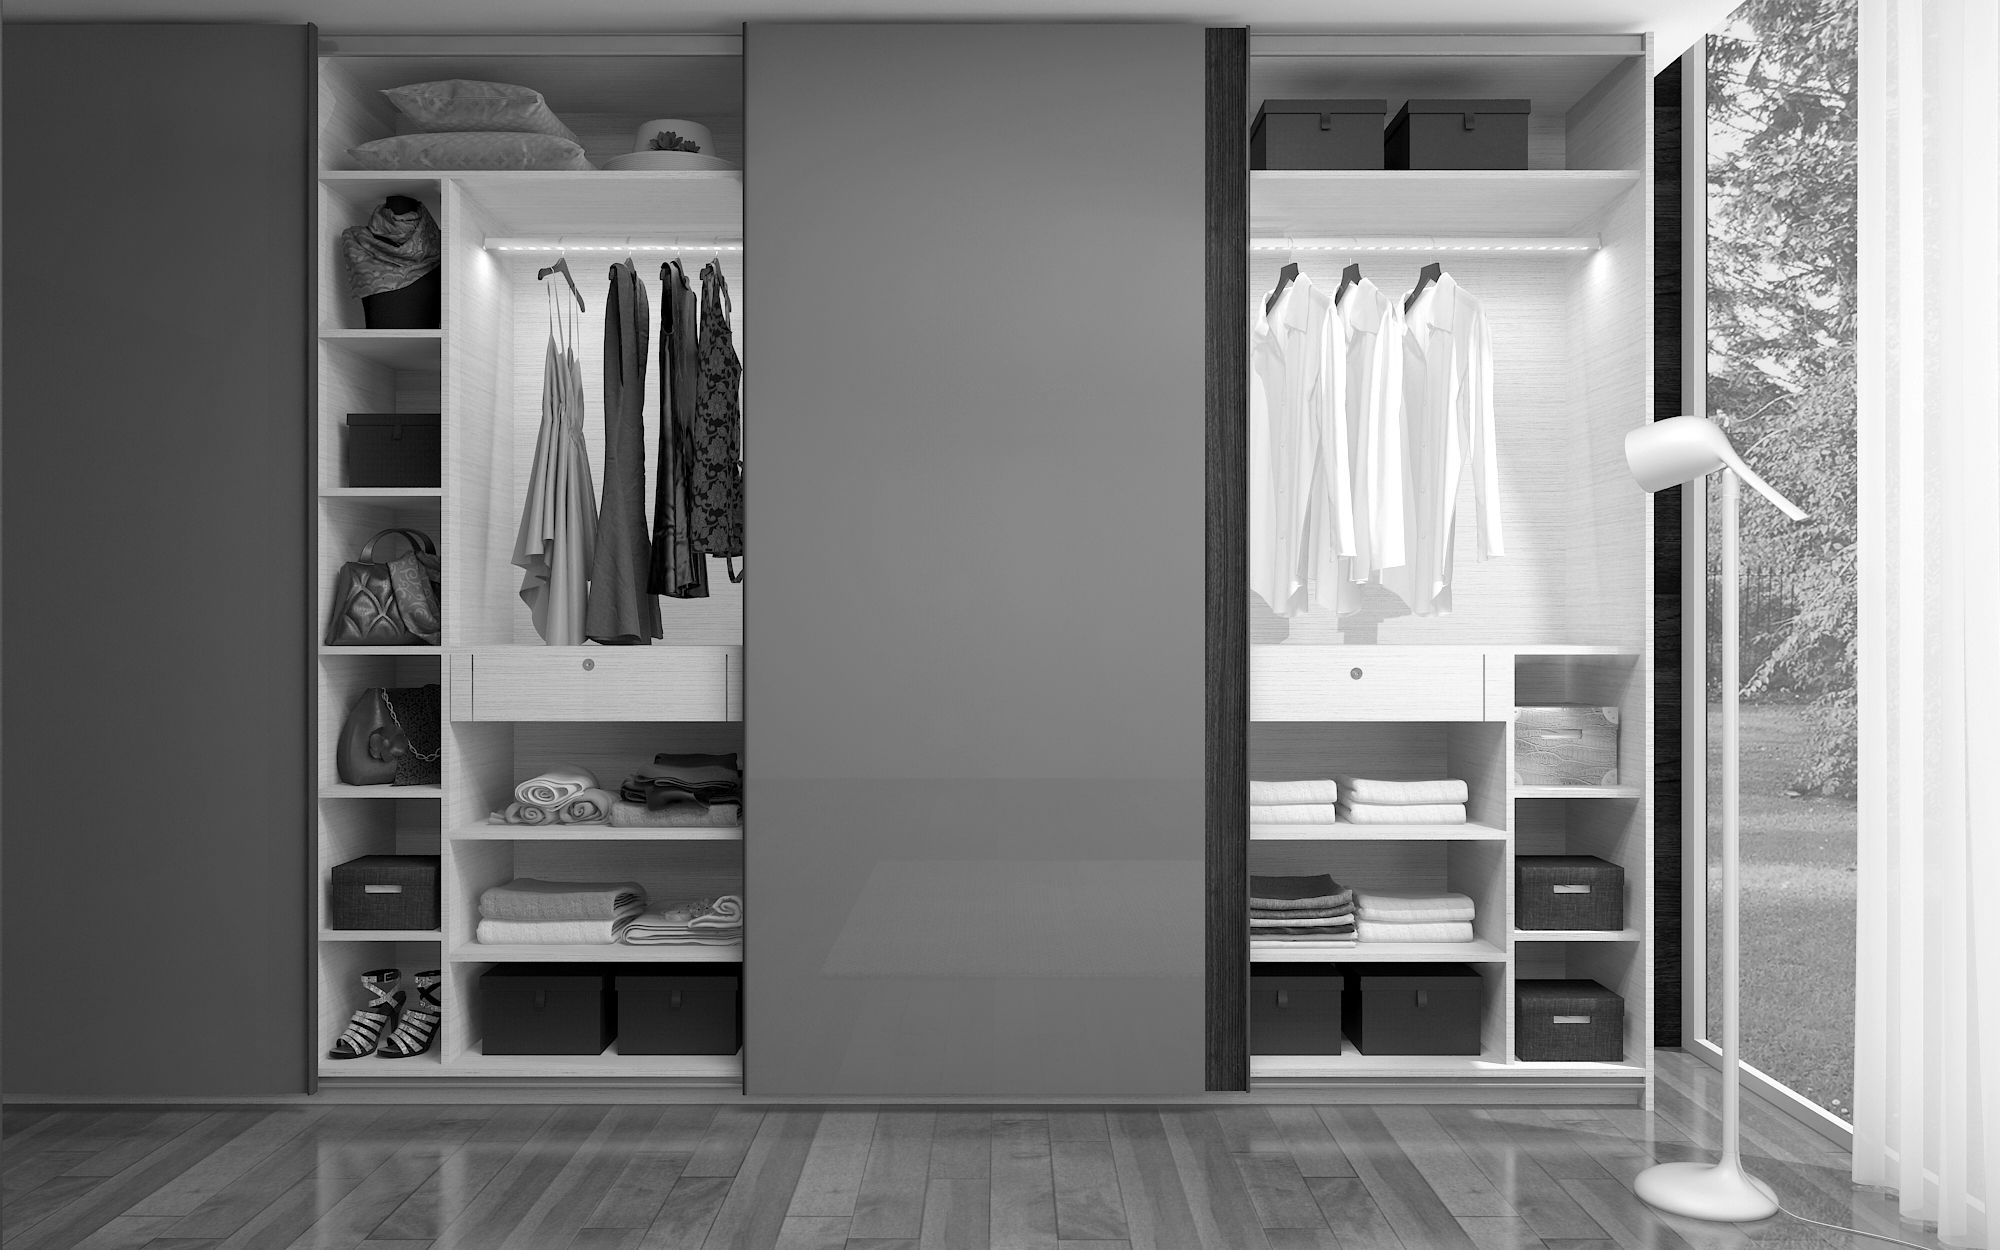 24 Cool Bedrooms Wardrobes Sample Among The Best Benefits Of Fitted Wardrobes Is The Wardrobes Is Develo Awesome Bedrooms Fitted Wardrobes Design Your Bedroom